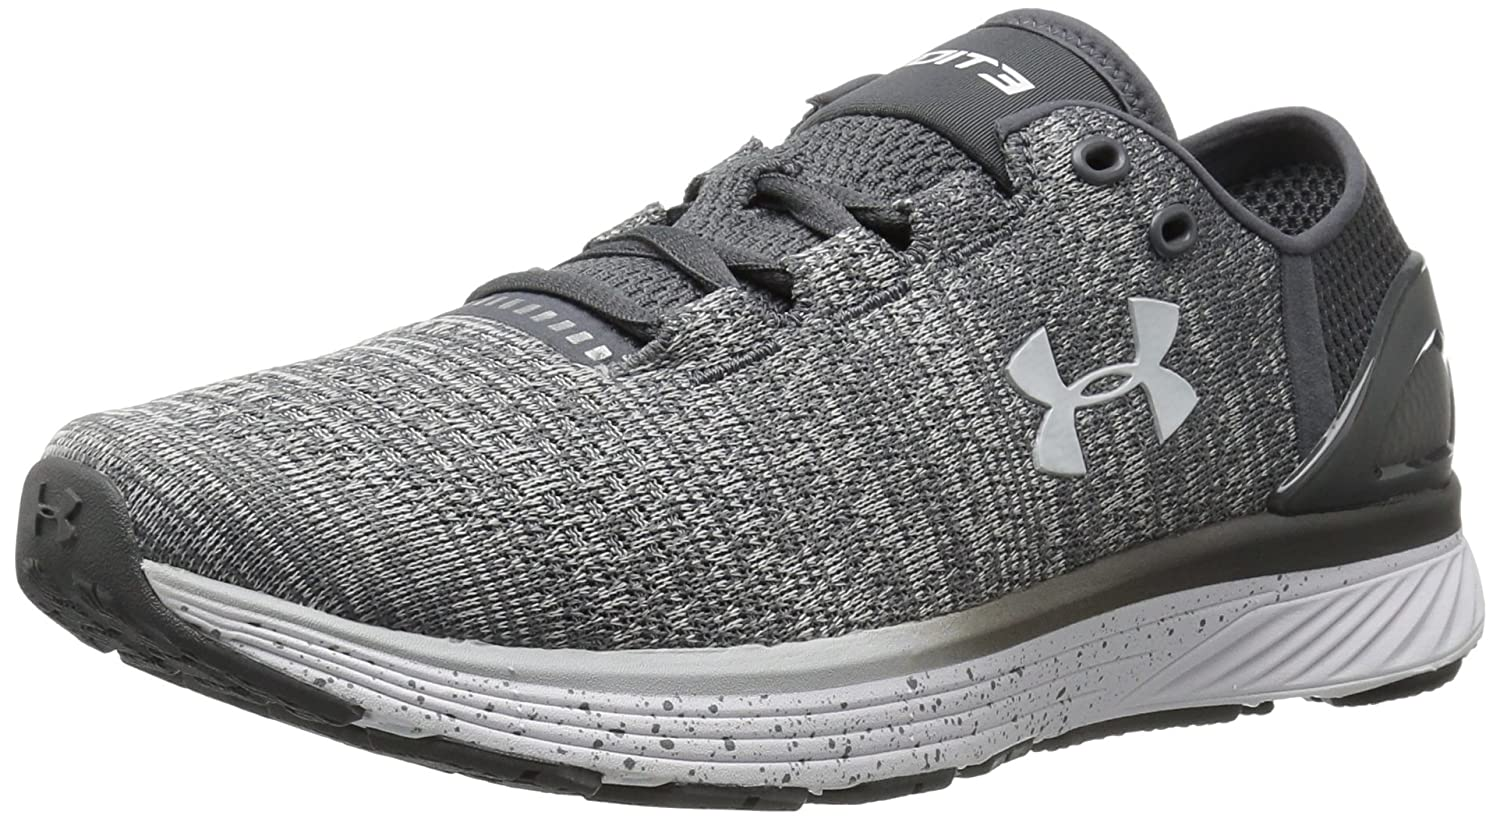 Under Armour Women's Charged Bandit 3 Running Shoe B072LP7HZB 7.5 M US|Glacier Gray (100)/Rhino Gray